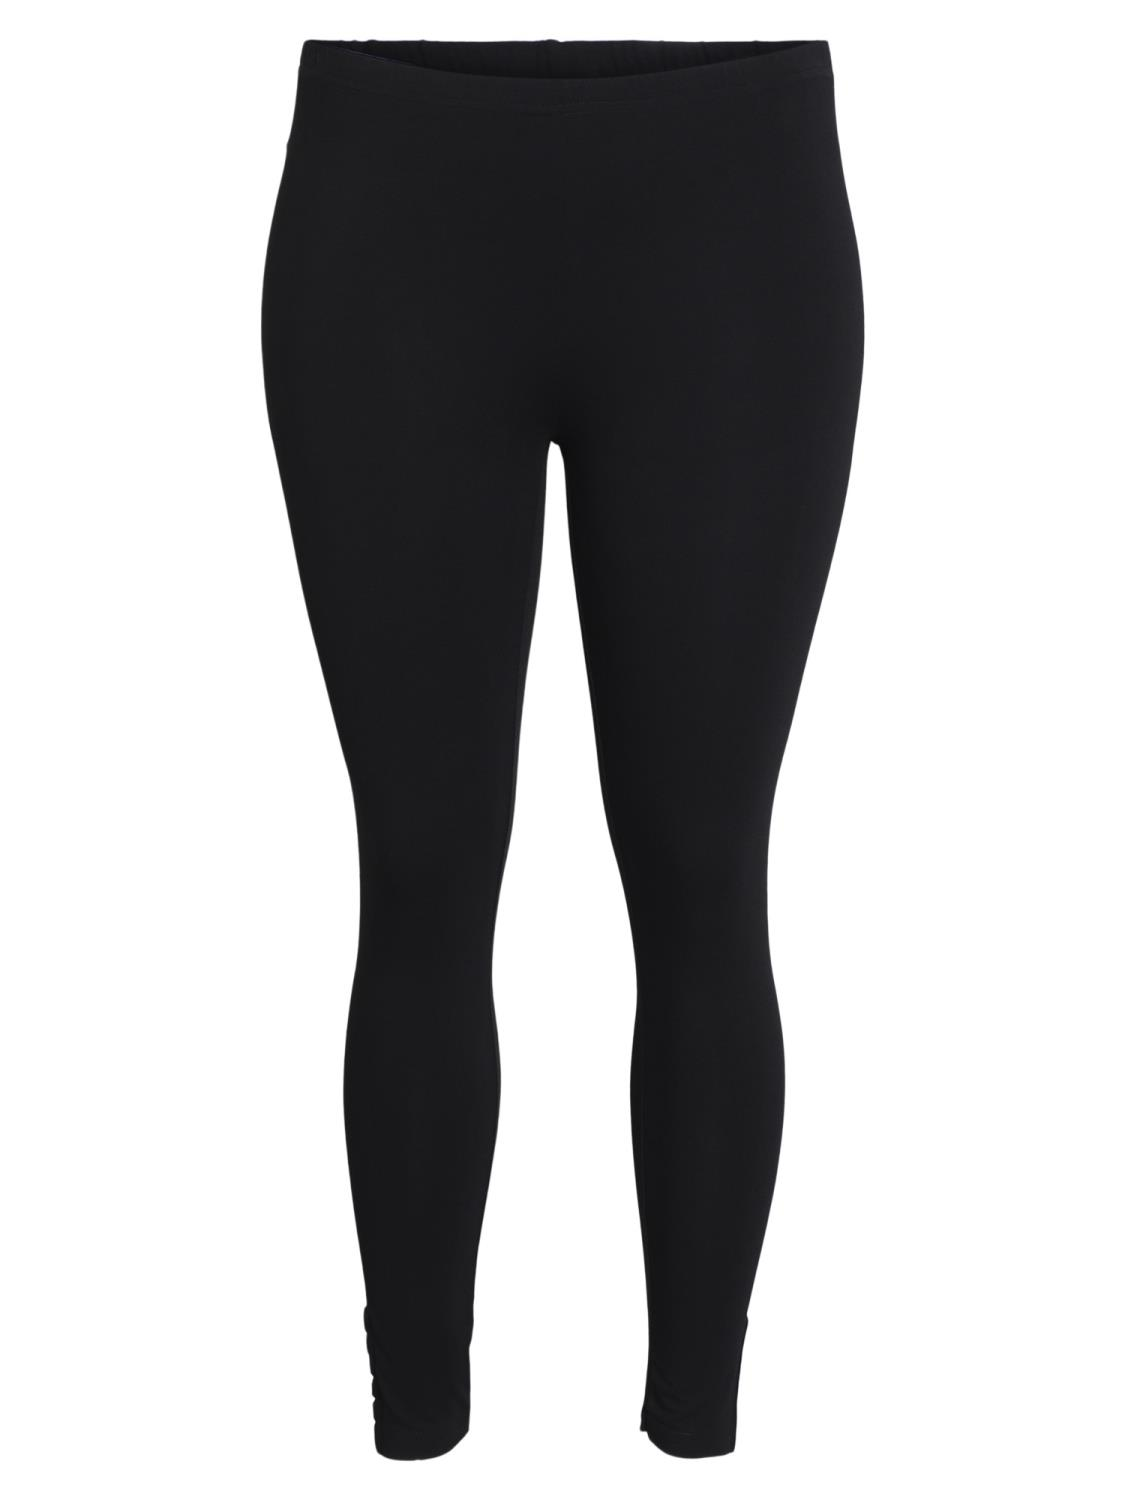 Ciso leggings with studs, sort